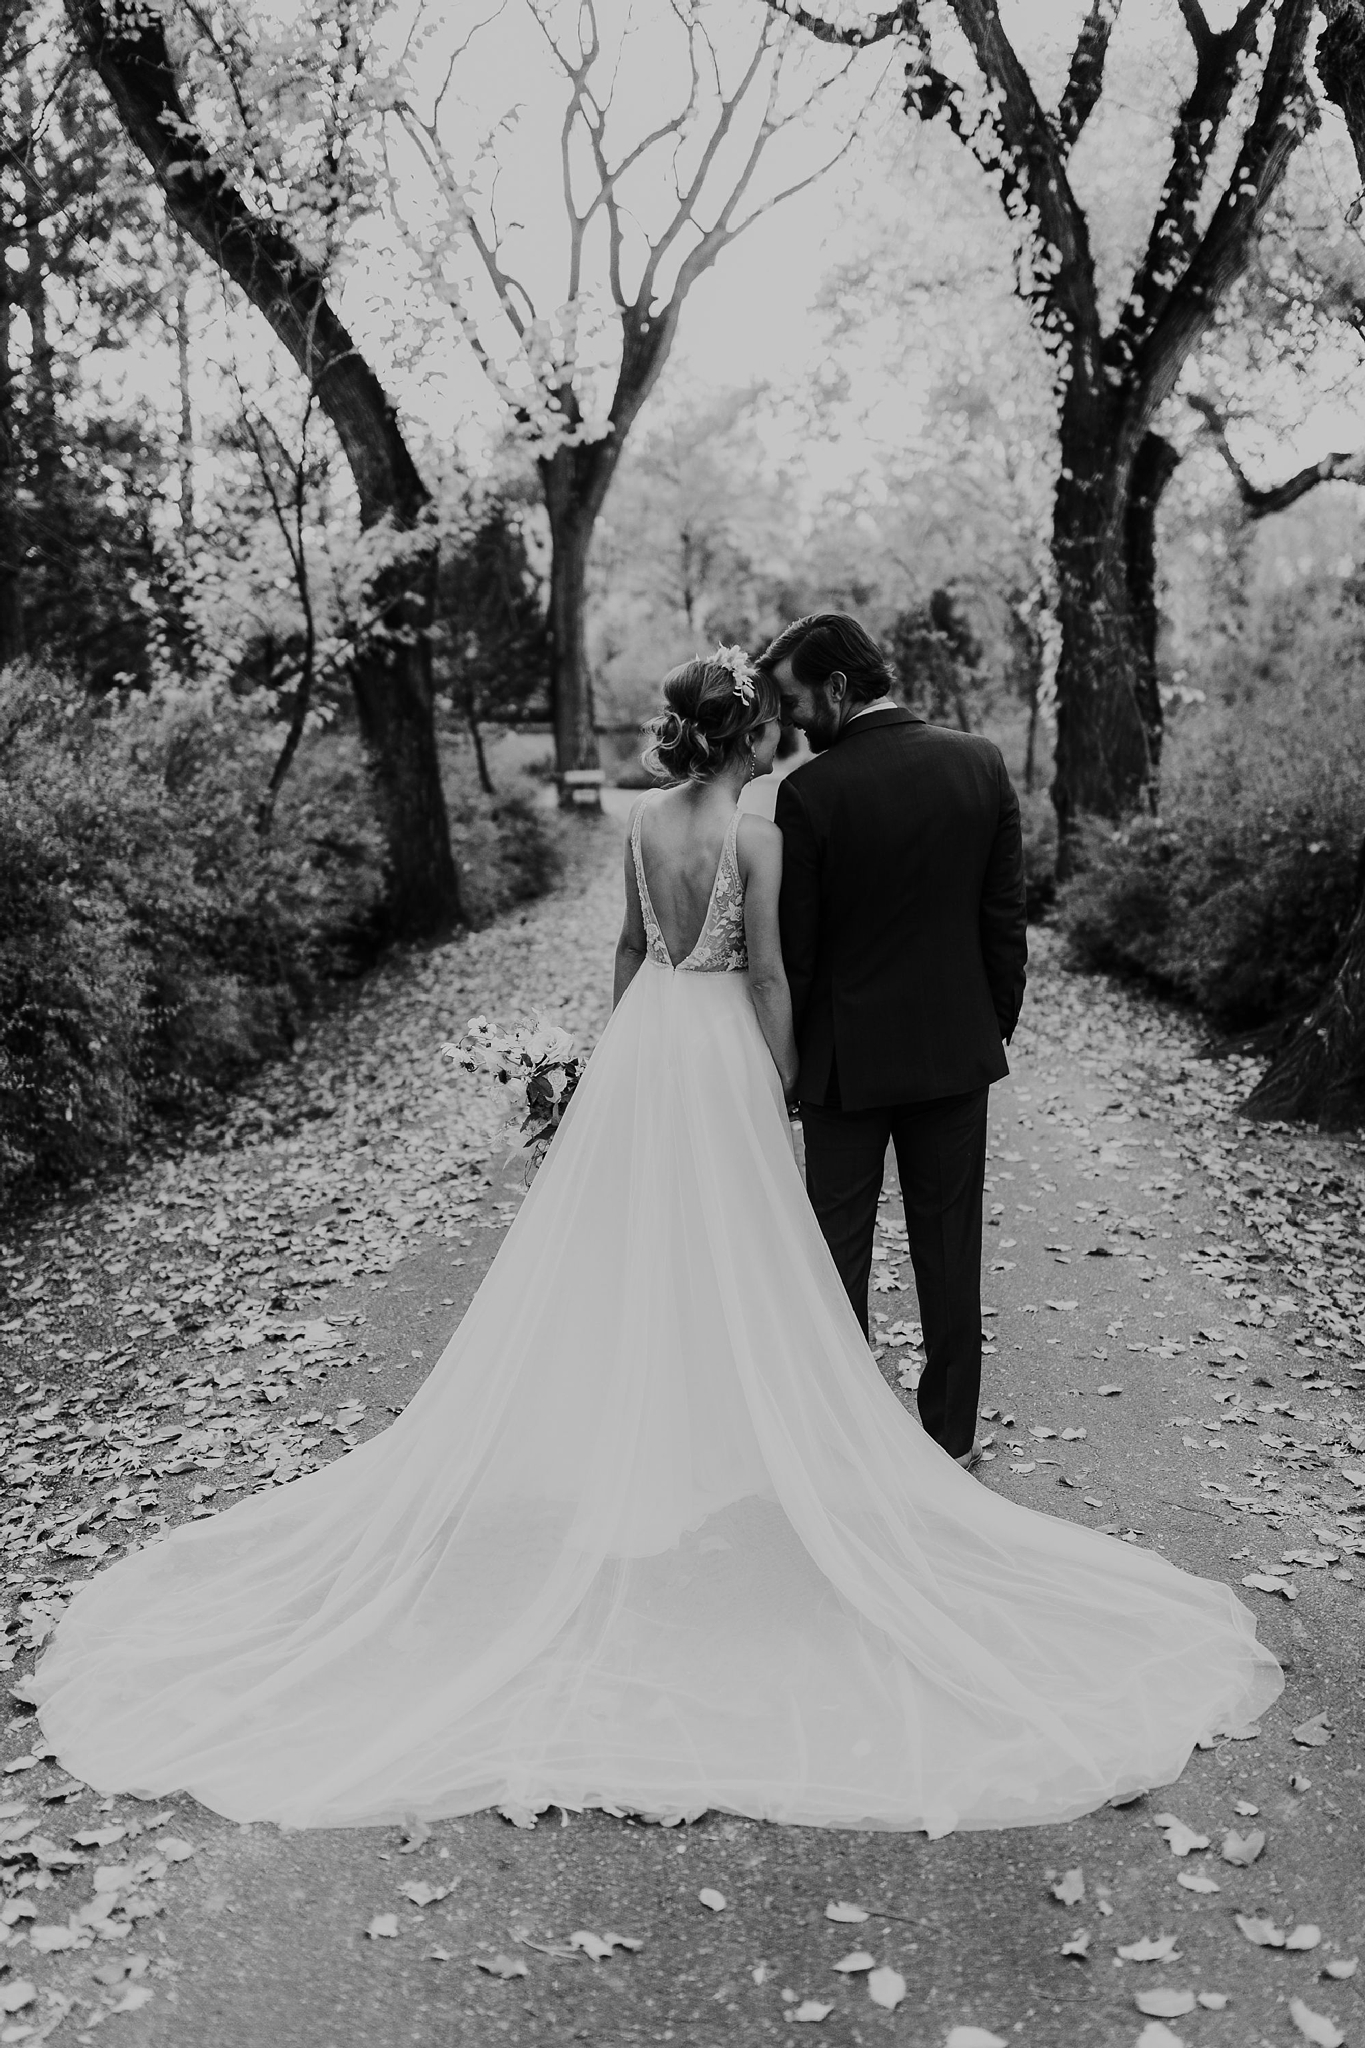 Alicia+lucia+photography+-+albuquerque+wedding+photographer+-+santa+fe+wedding+photography+-+new+mexico+wedding+photographer+-+new+mexico+wedding+-+wedding+gowns+-+bridal+gowns+-+a+line+wedding+gown_0006.jpg